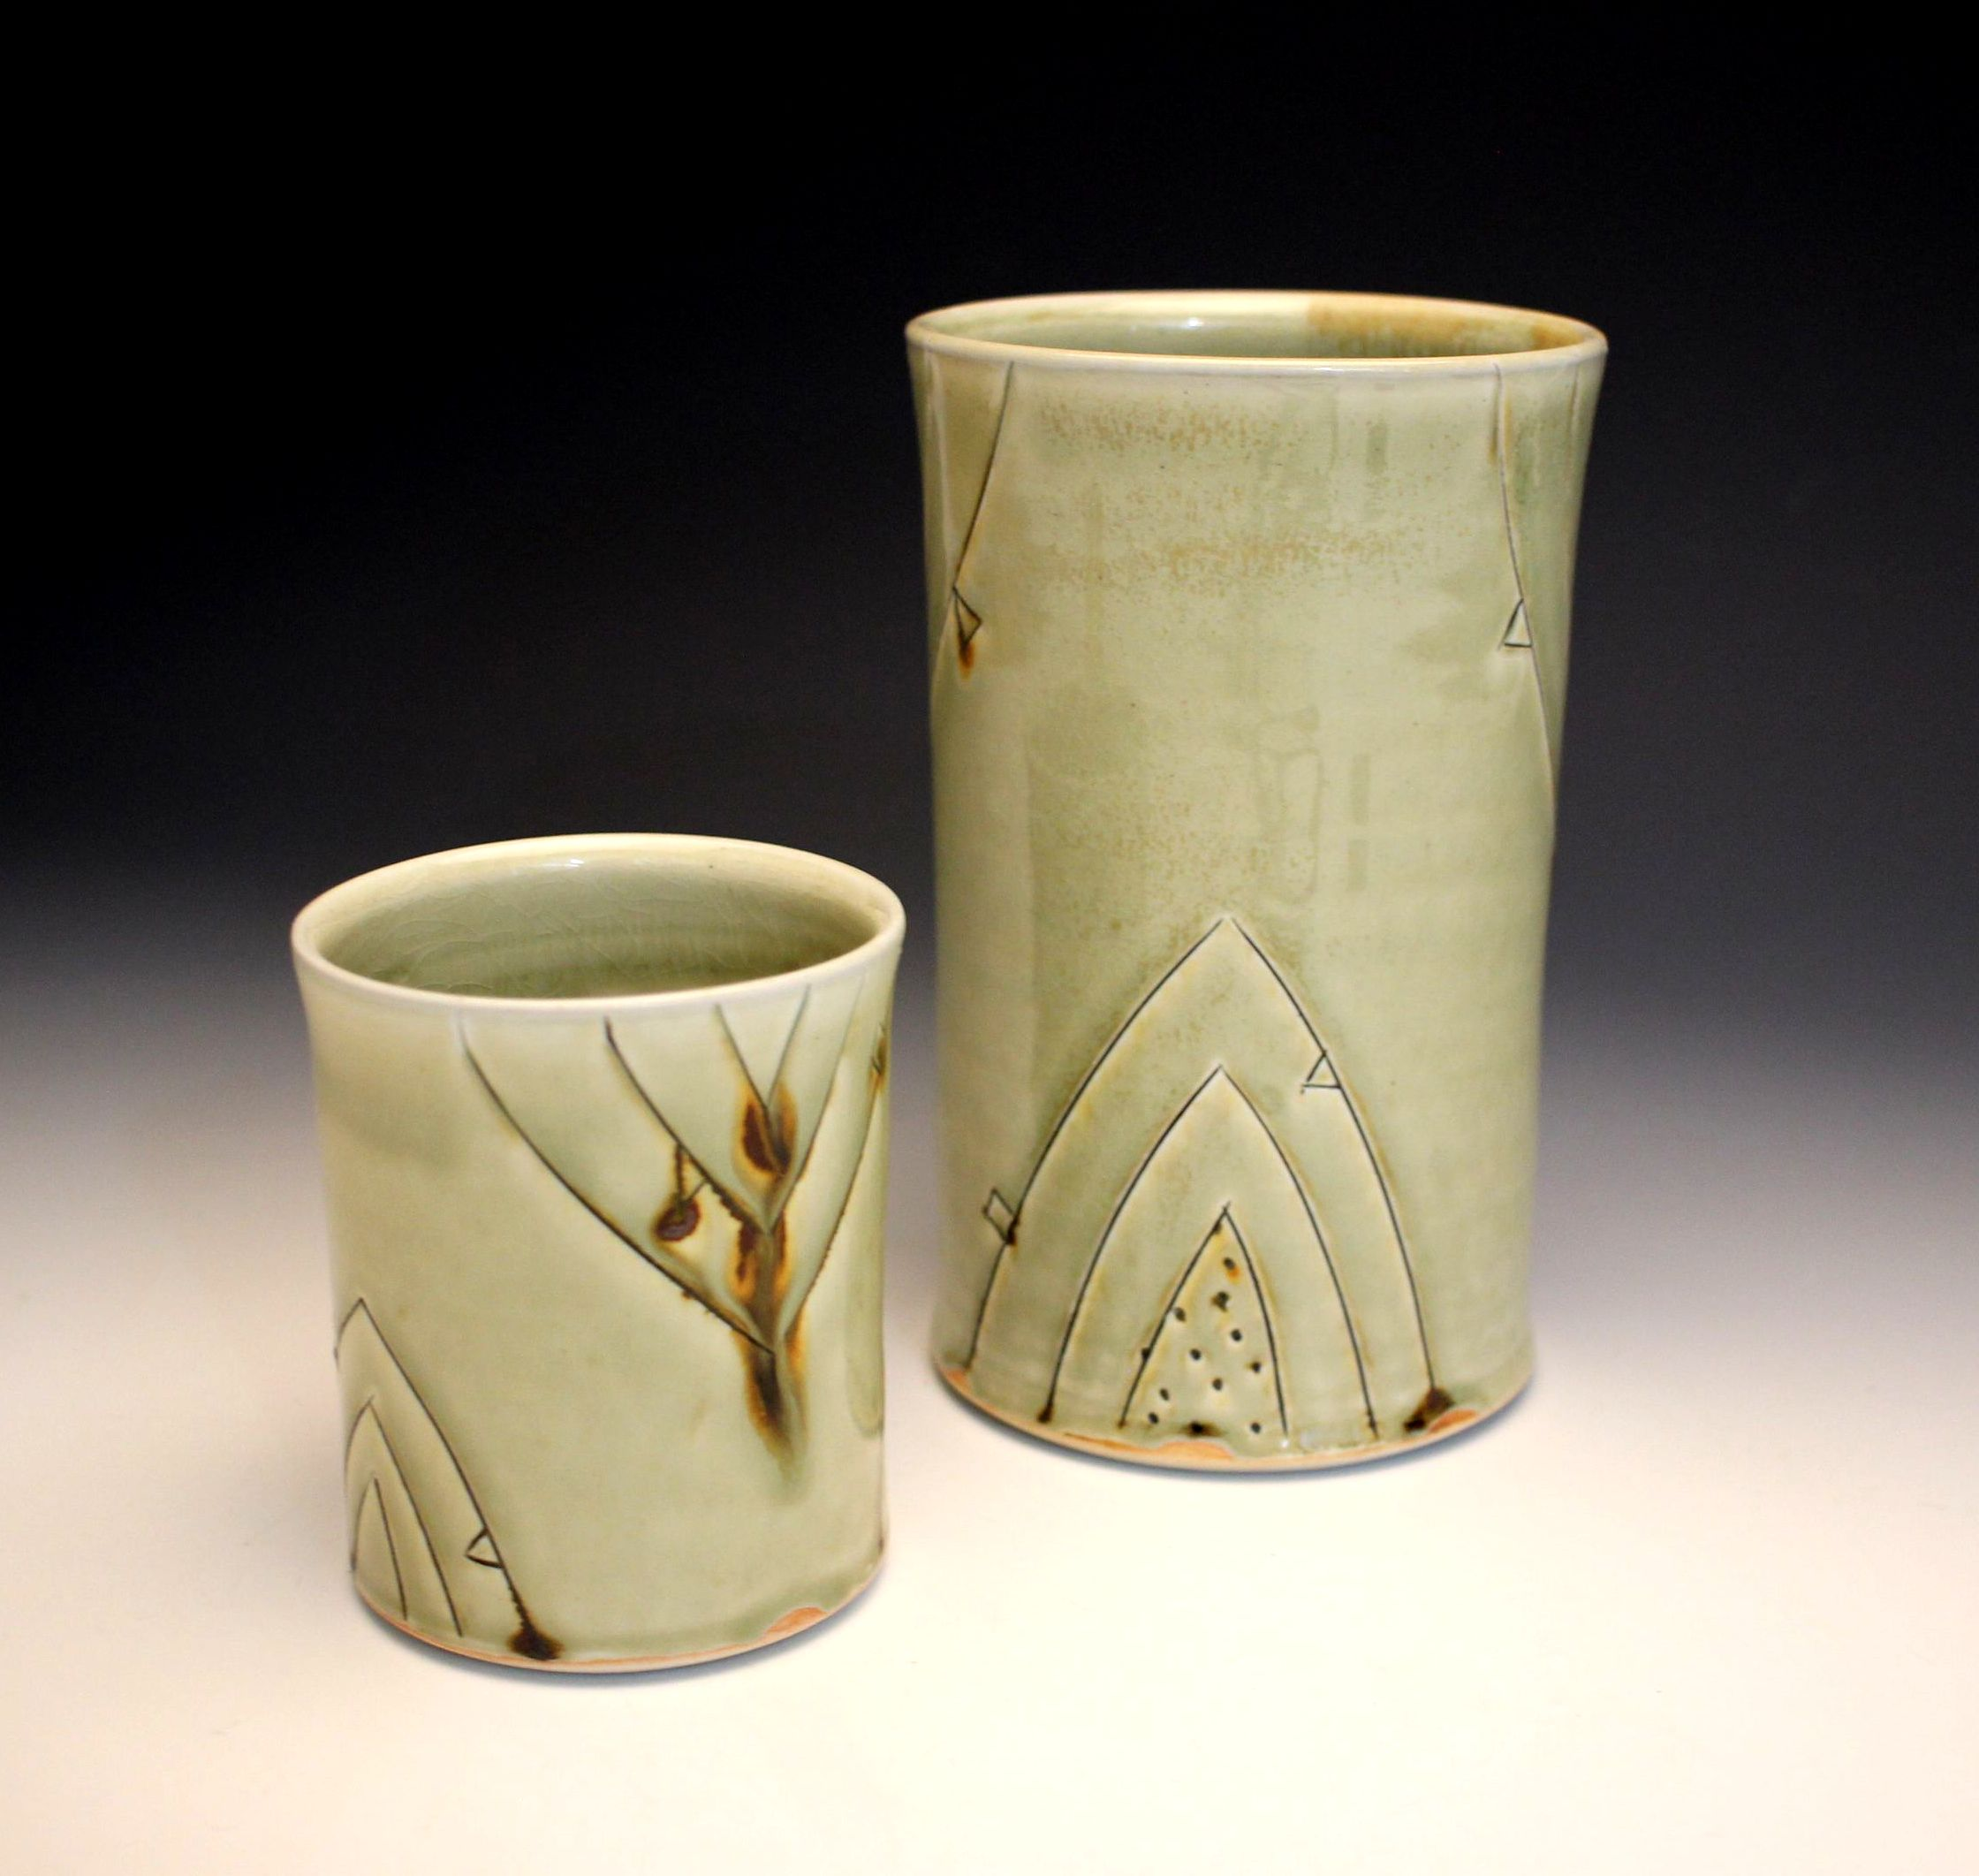 Rick Hintze - Vessel and Cup